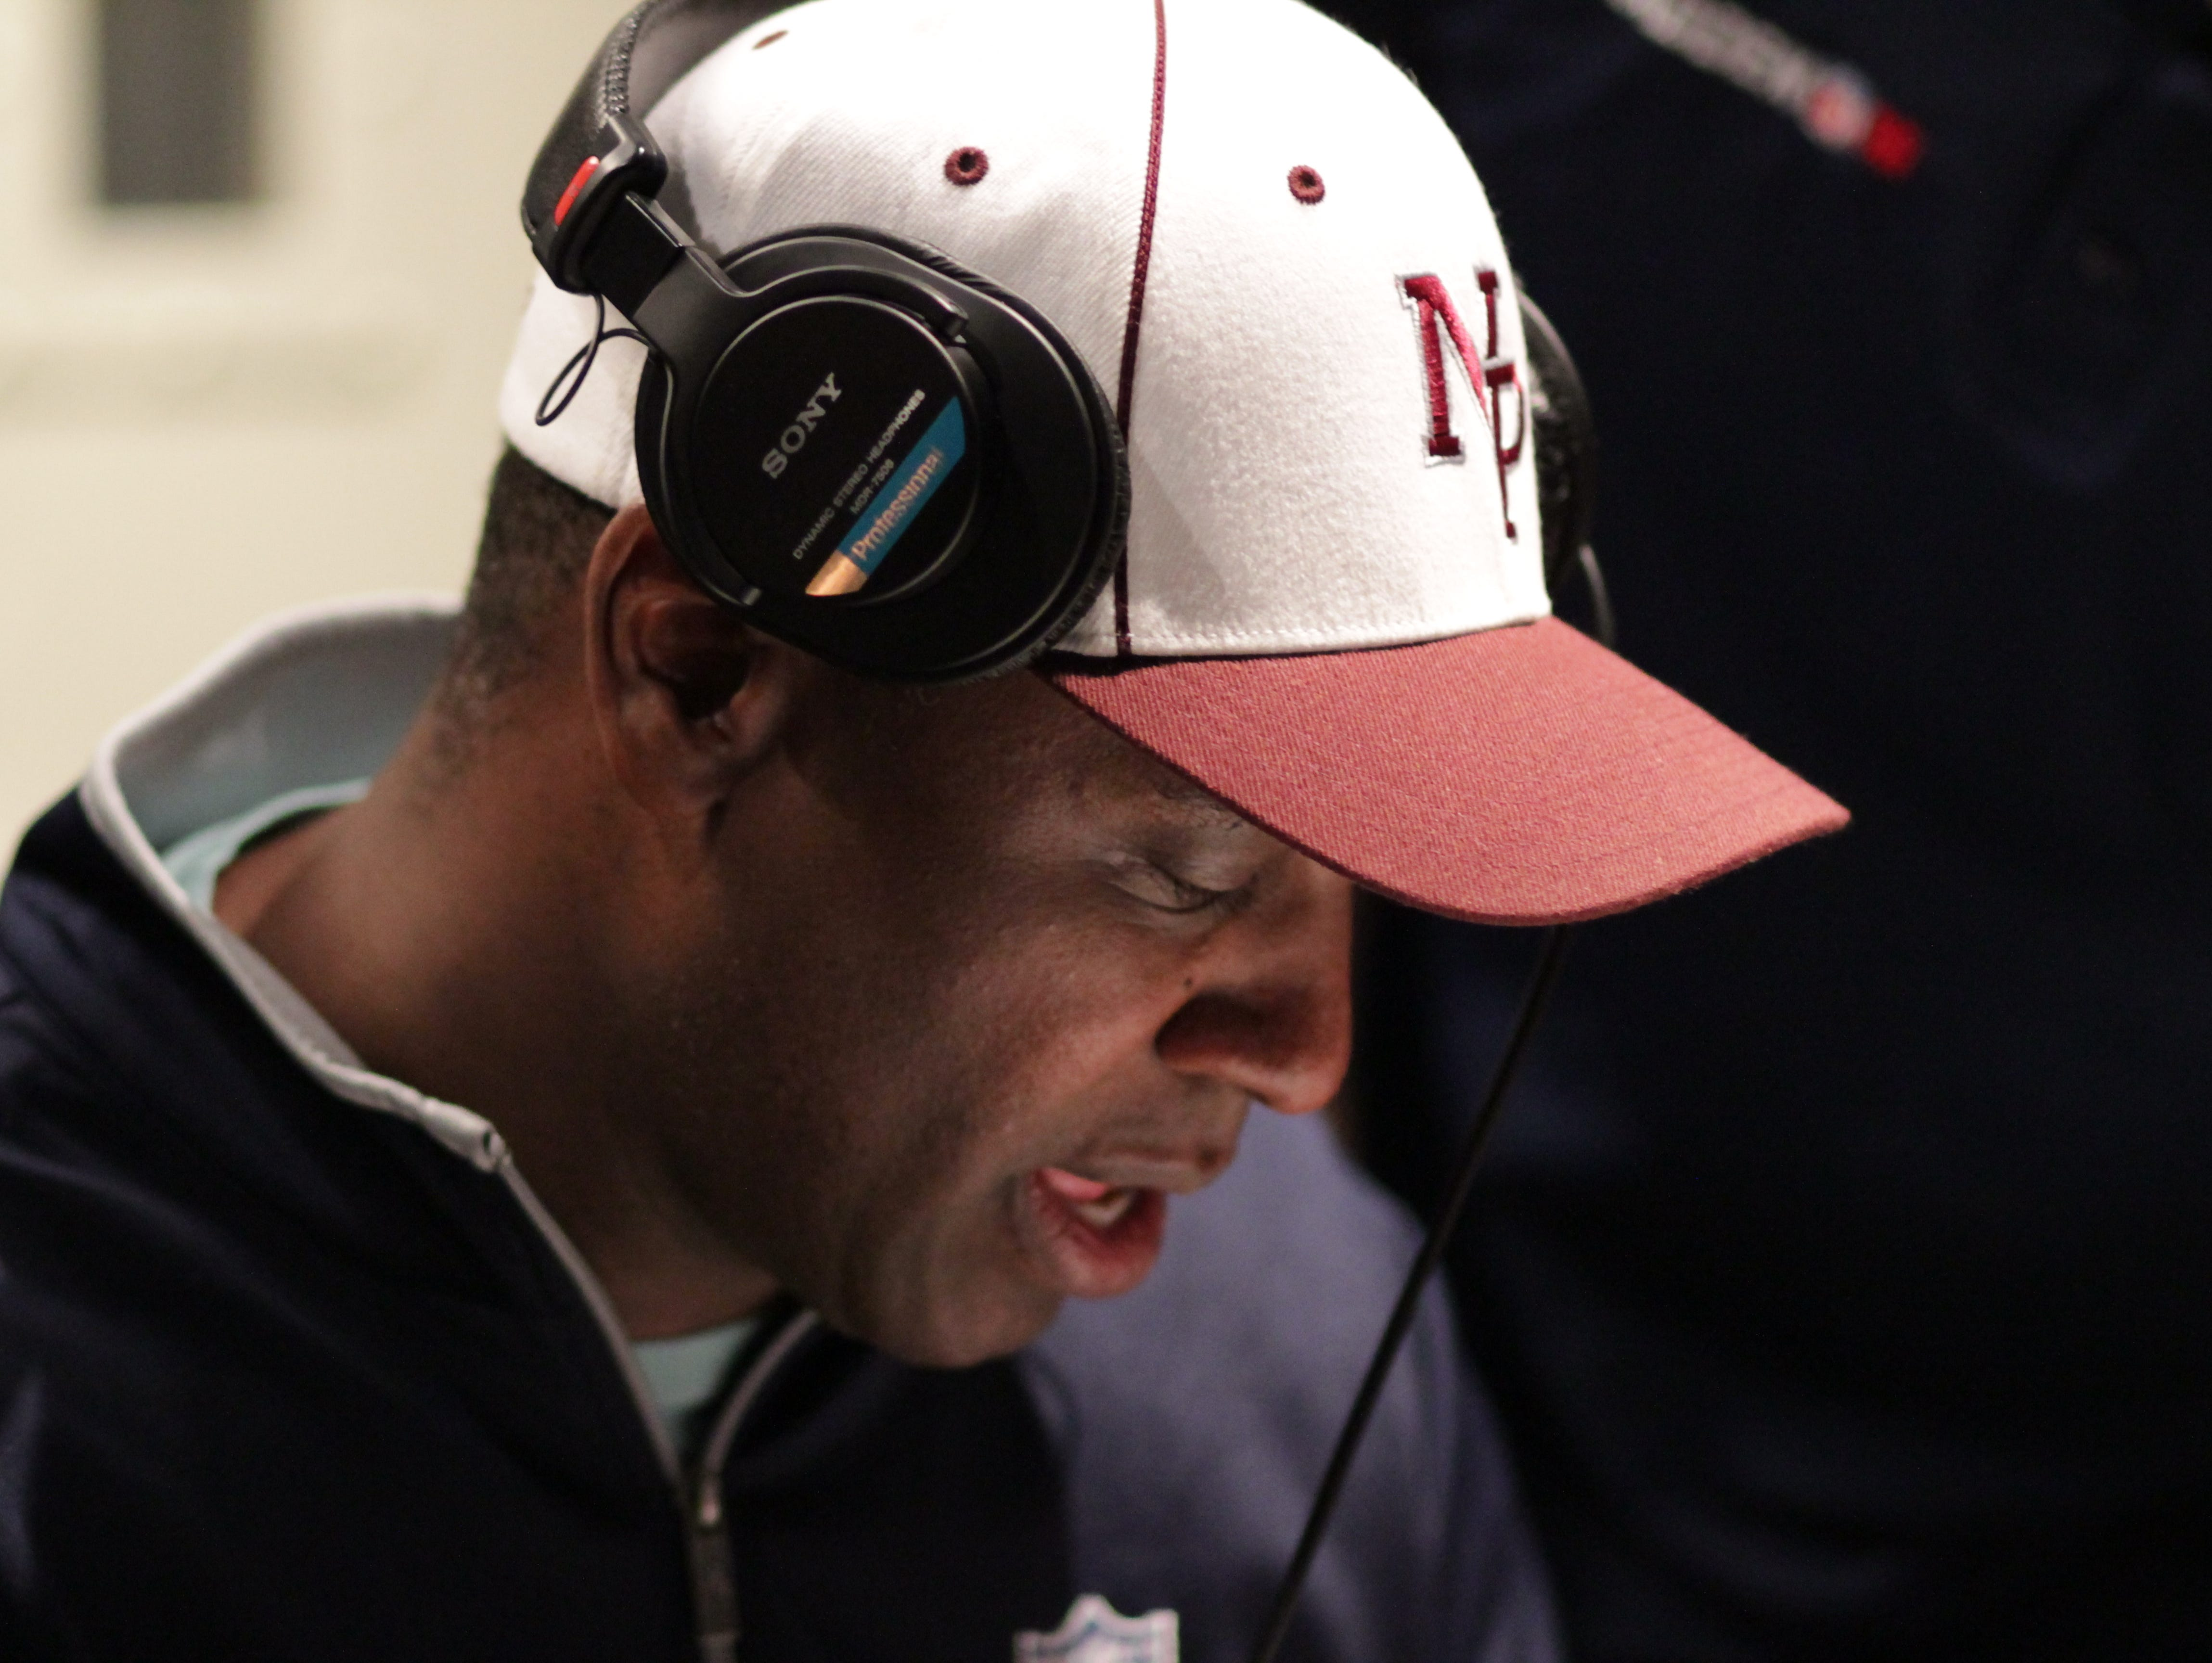 New Paltz native Charles Davis, wearing a New Paltz High School hat, reads his lines for the Madden NFL 17 video game at the Madden NFL studio at EA Sports.